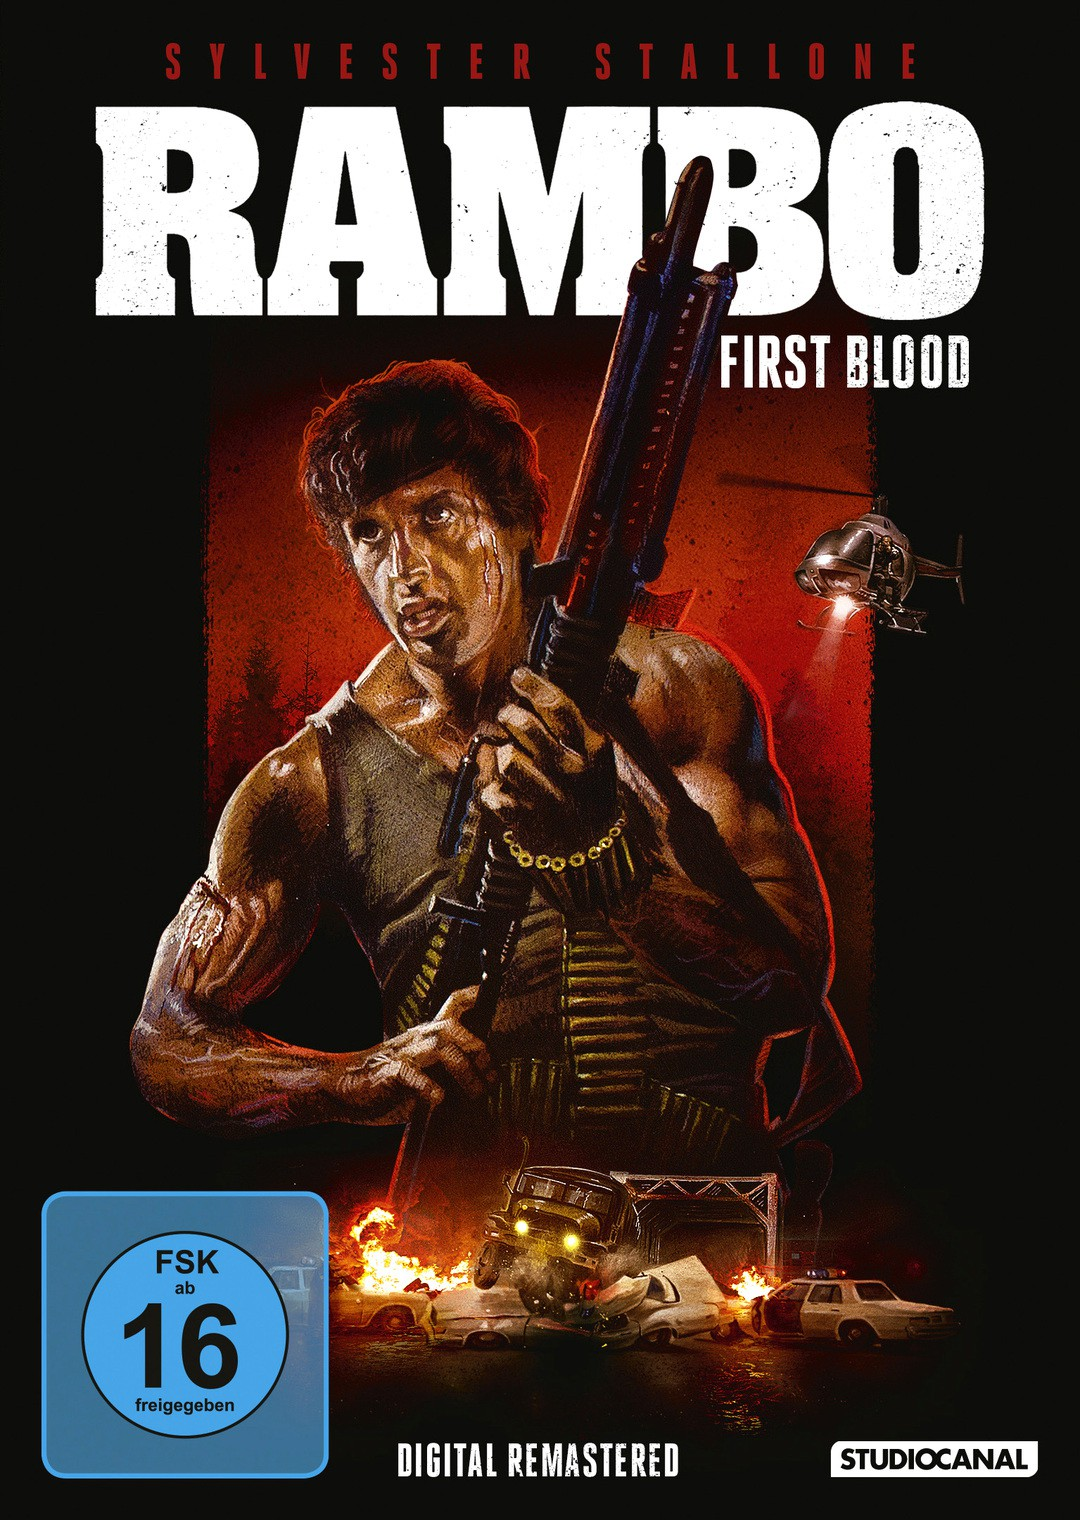 Rambo 1 Trailer - First Blood - Bild 1 von 4